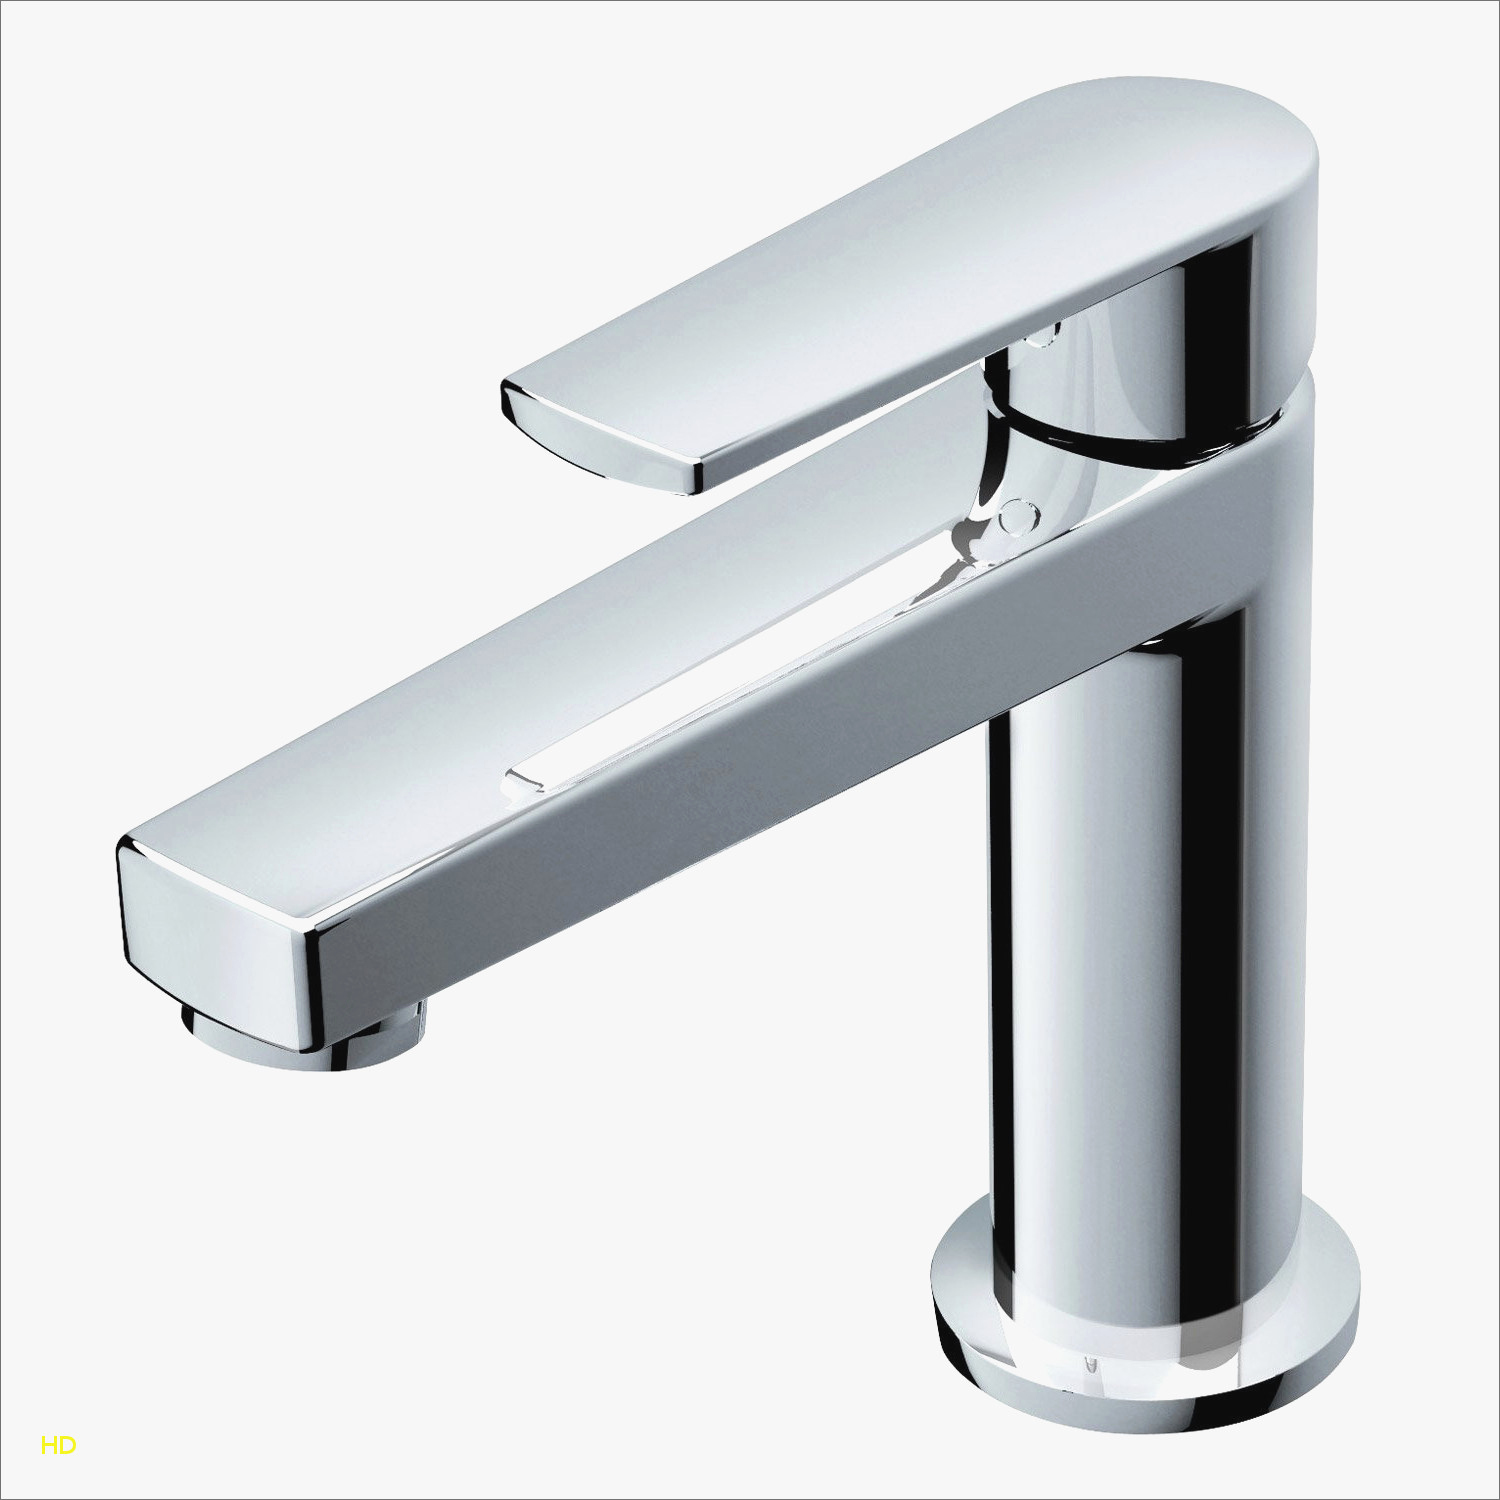 Mitigeur thermostatique Grohe Castorama Luxe Image Mitigeur Baignoire Grohe Castorama Beau Douche Italienne Pour